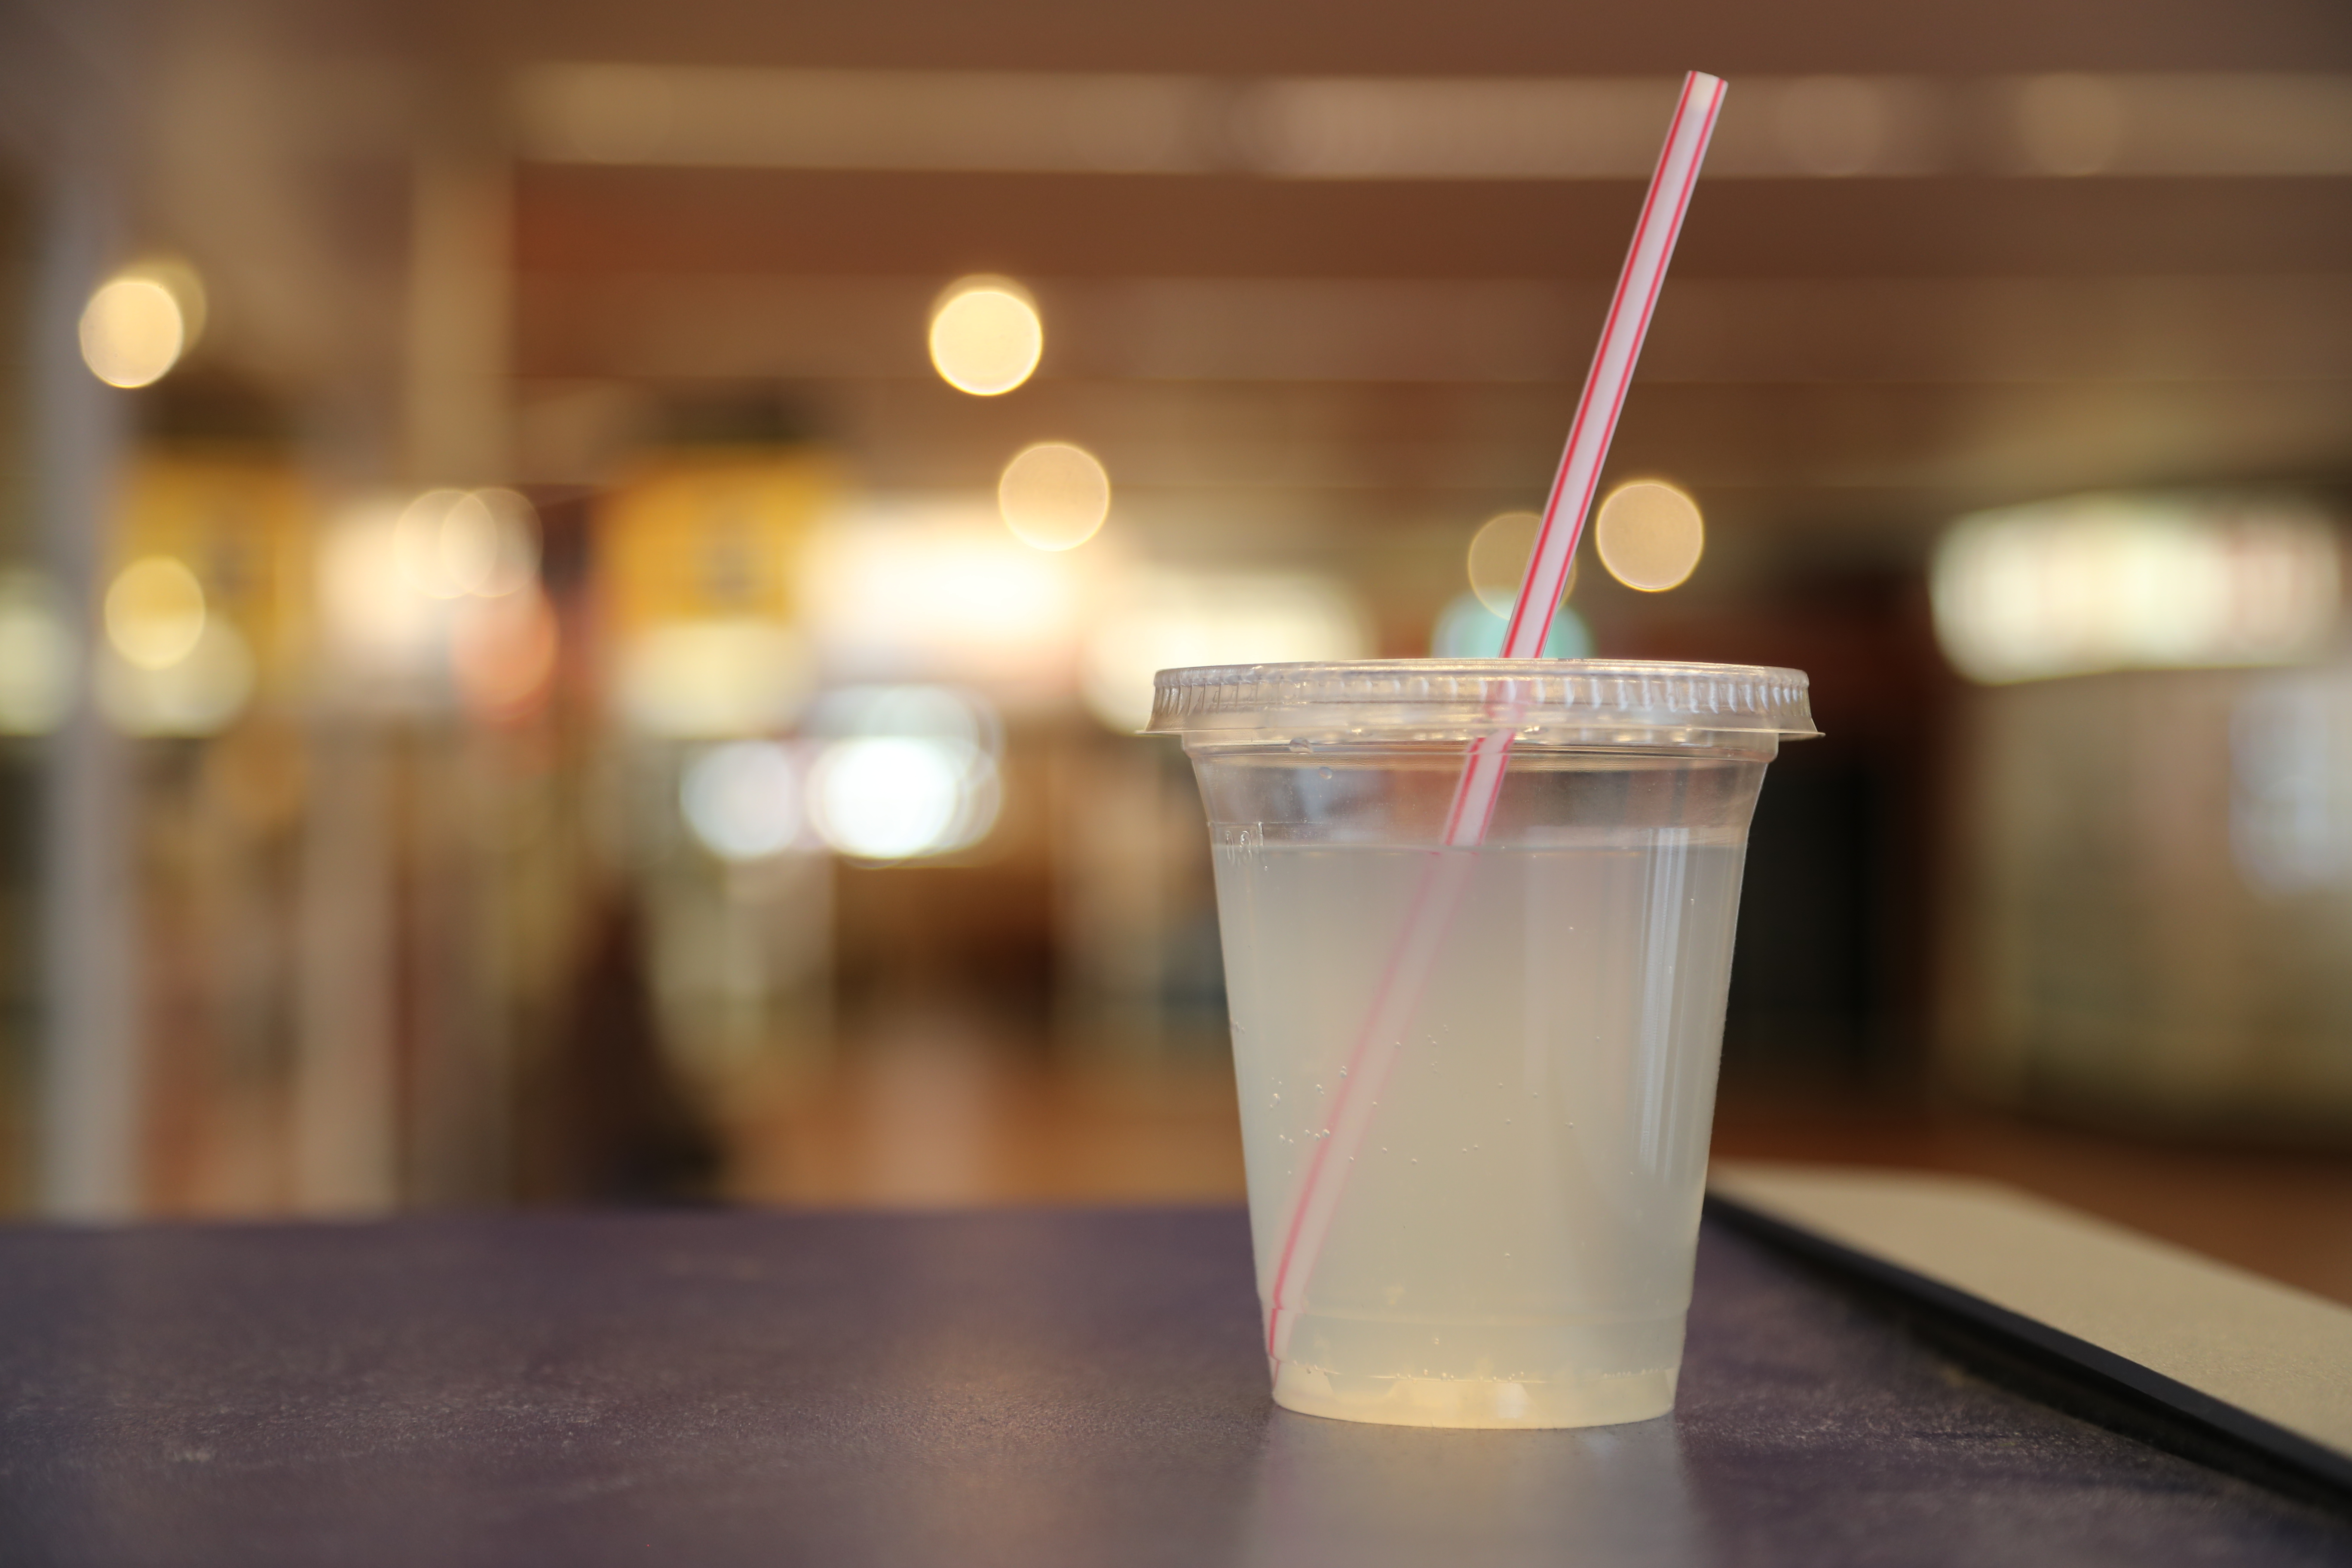 plastic cup lemonade with straw